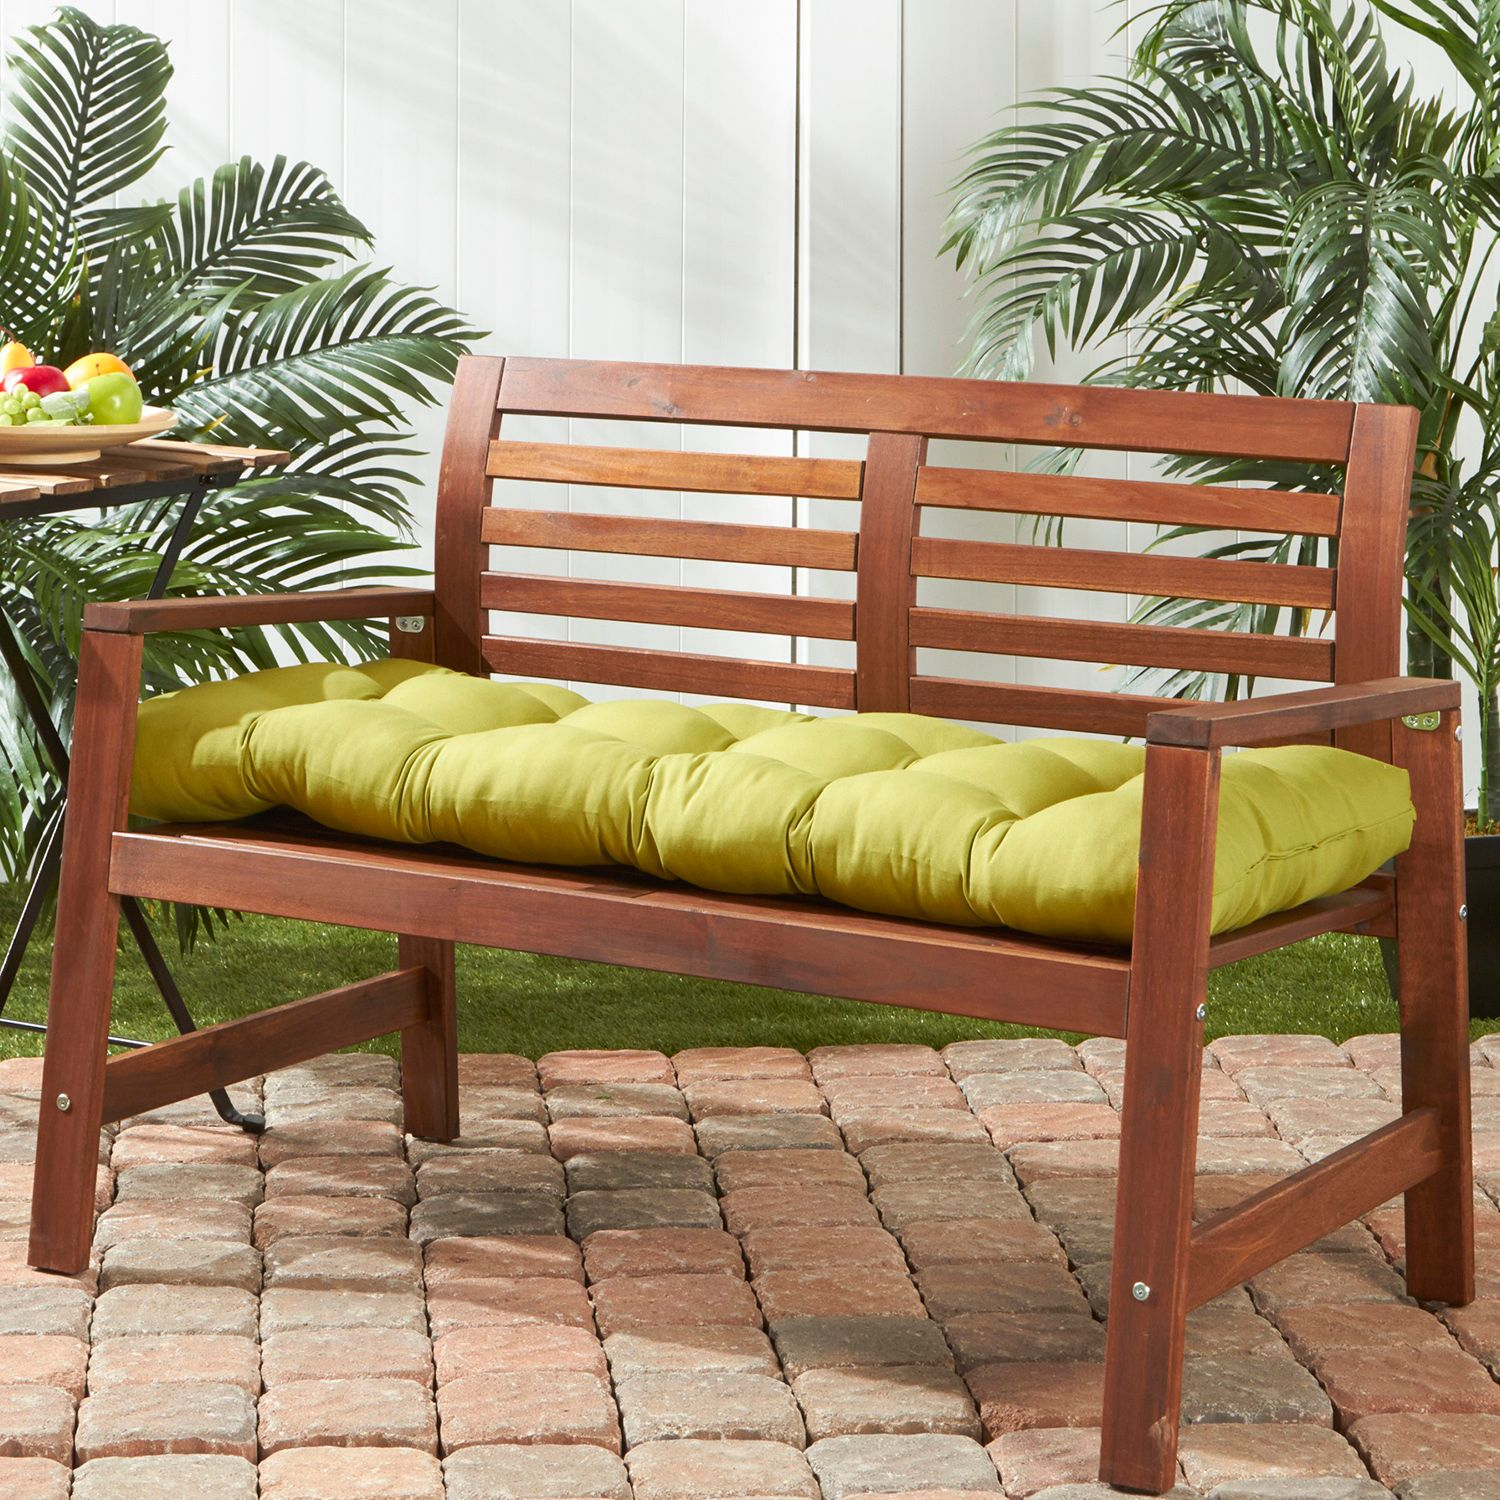 Simple Greendale Home Fashions Outdoor Porch Swing or Bench Cushion Long